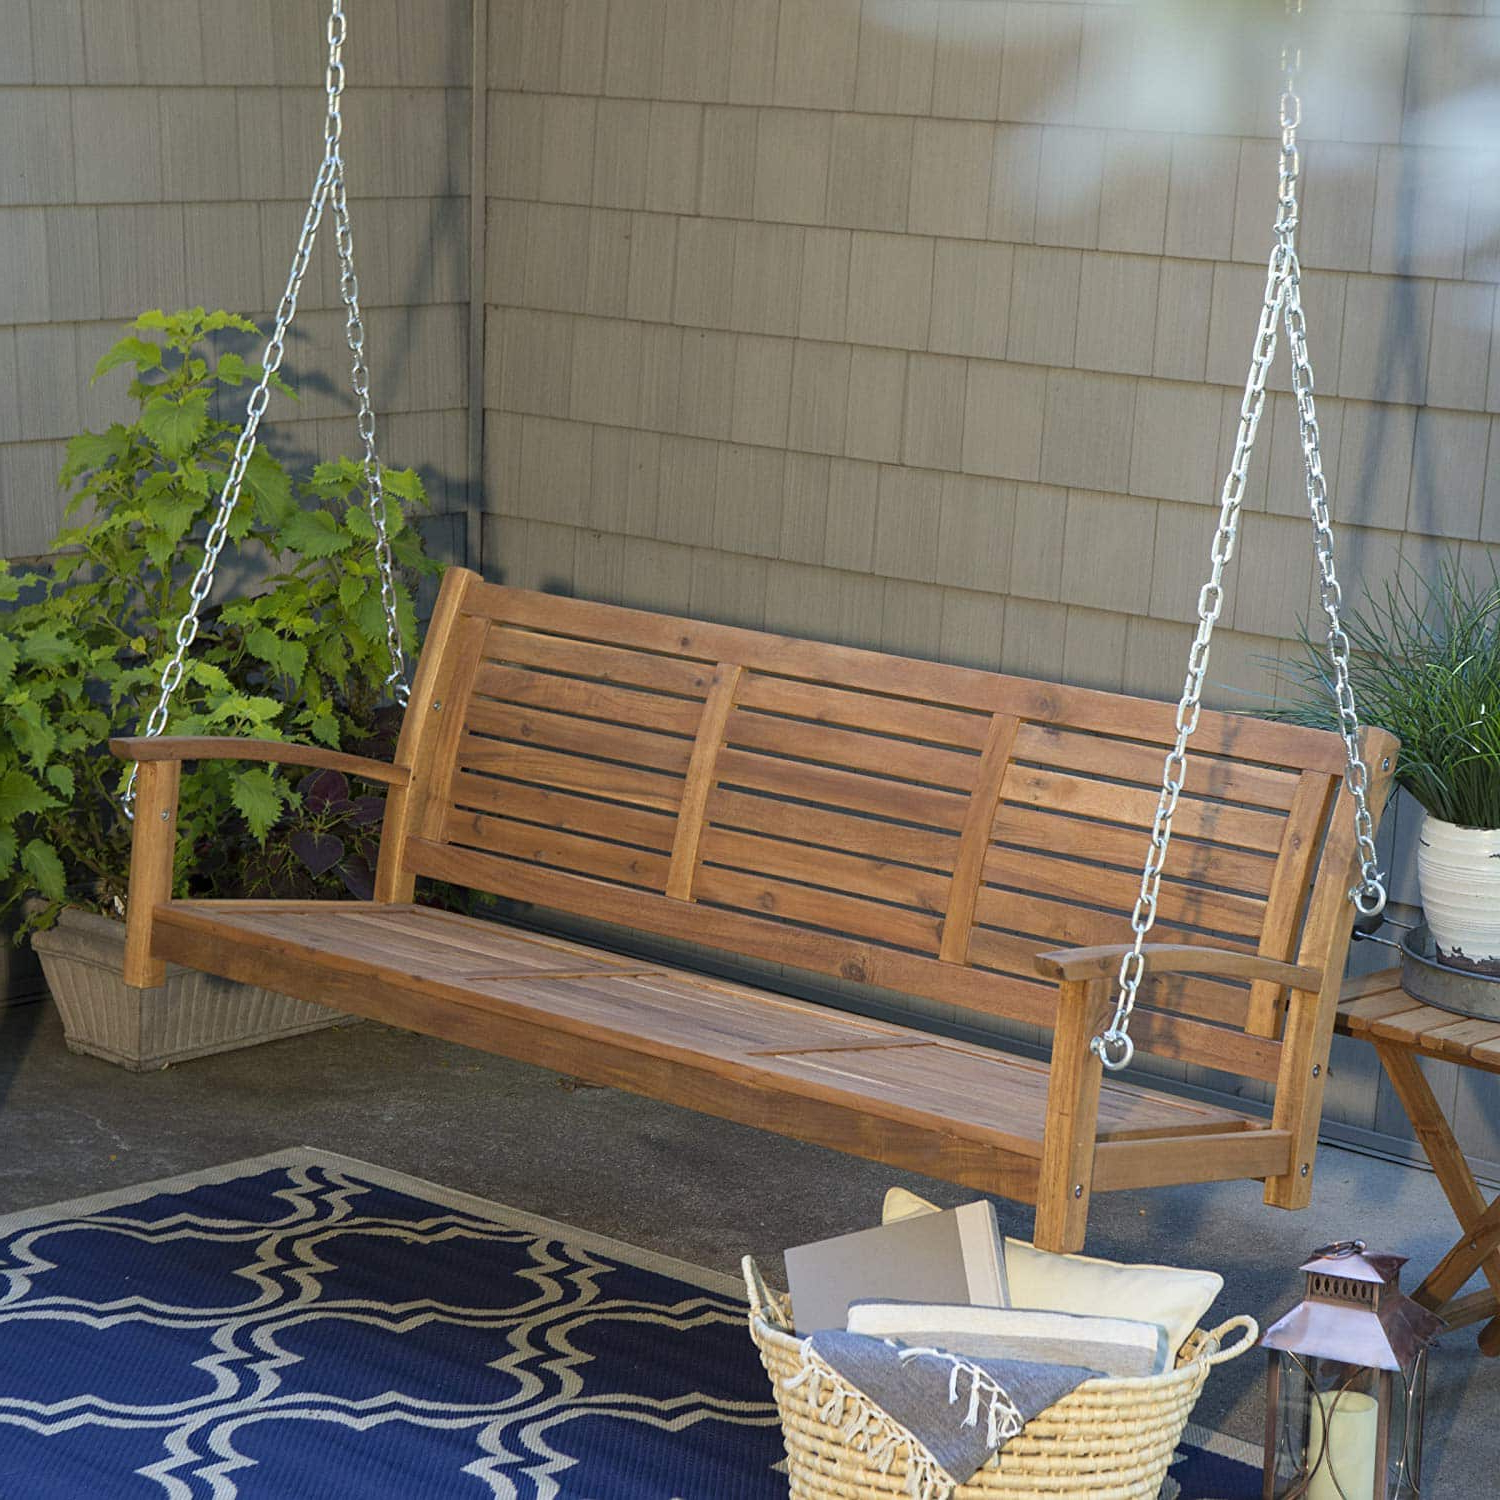 Top 10 Best Porch Swings In 2020 Reviews (View 18 of 25)